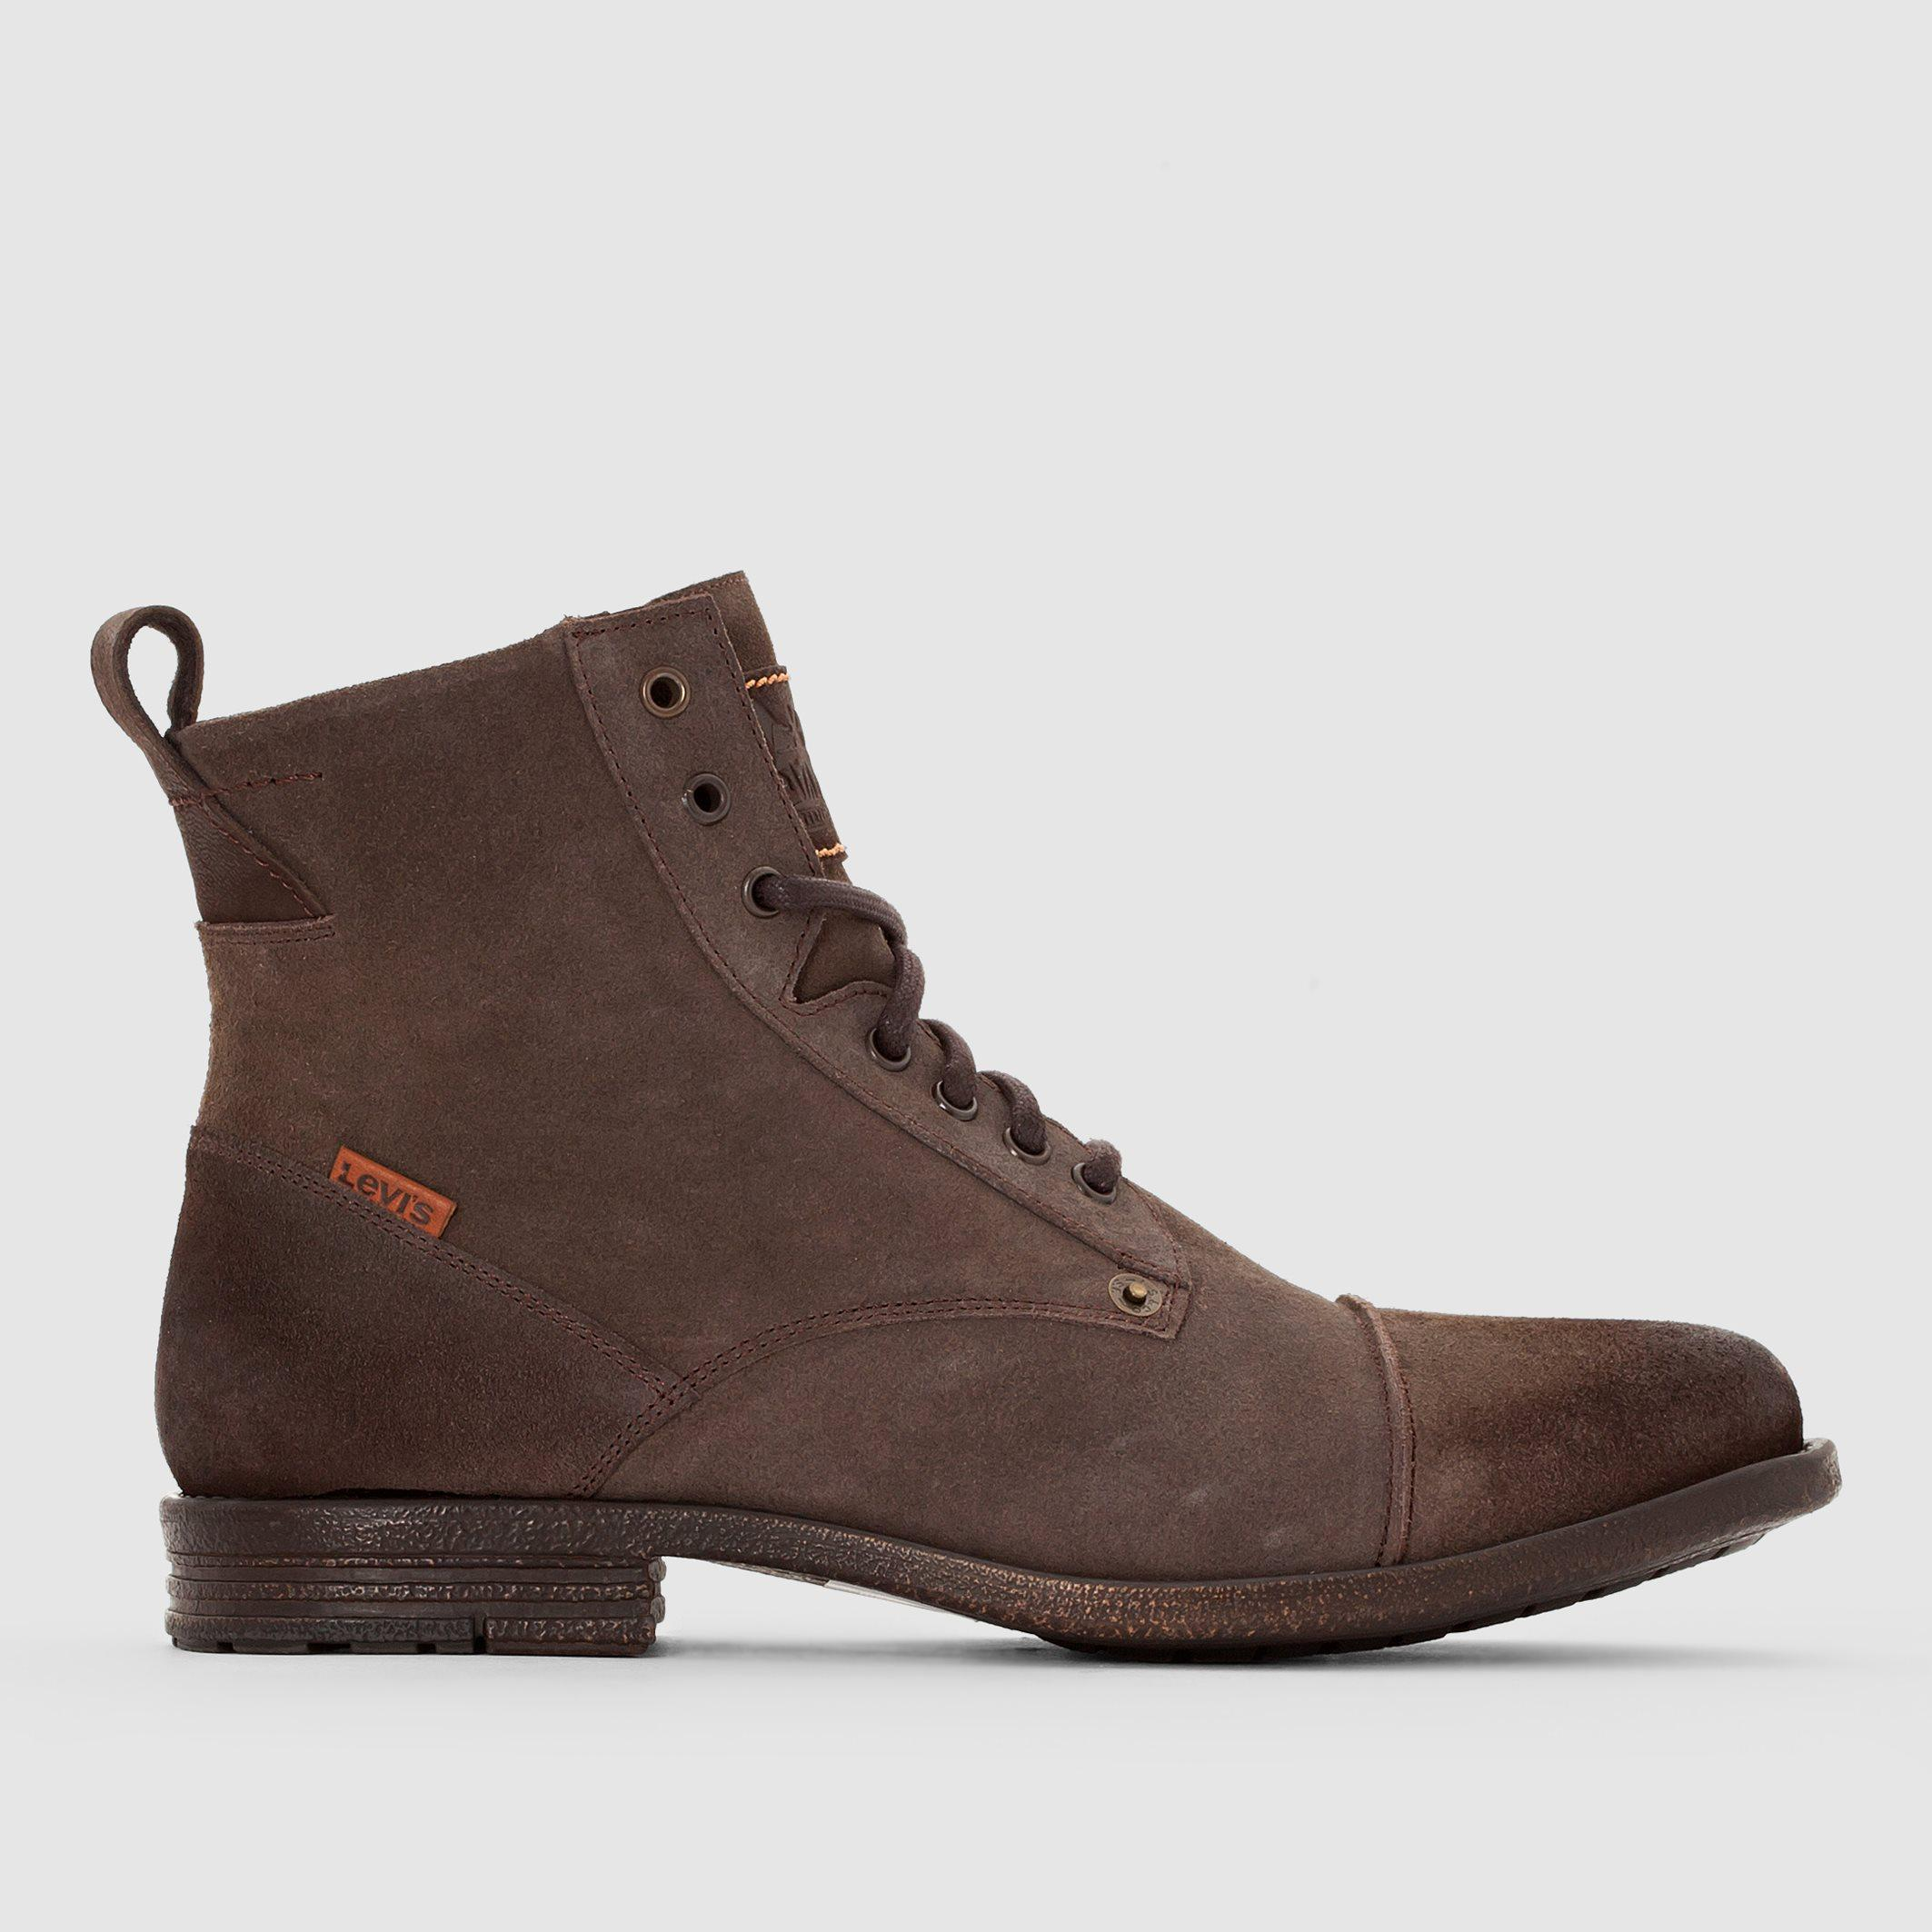 lyst levi 39 s emerson lace up leather boots in brown for men. Black Bedroom Furniture Sets. Home Design Ideas